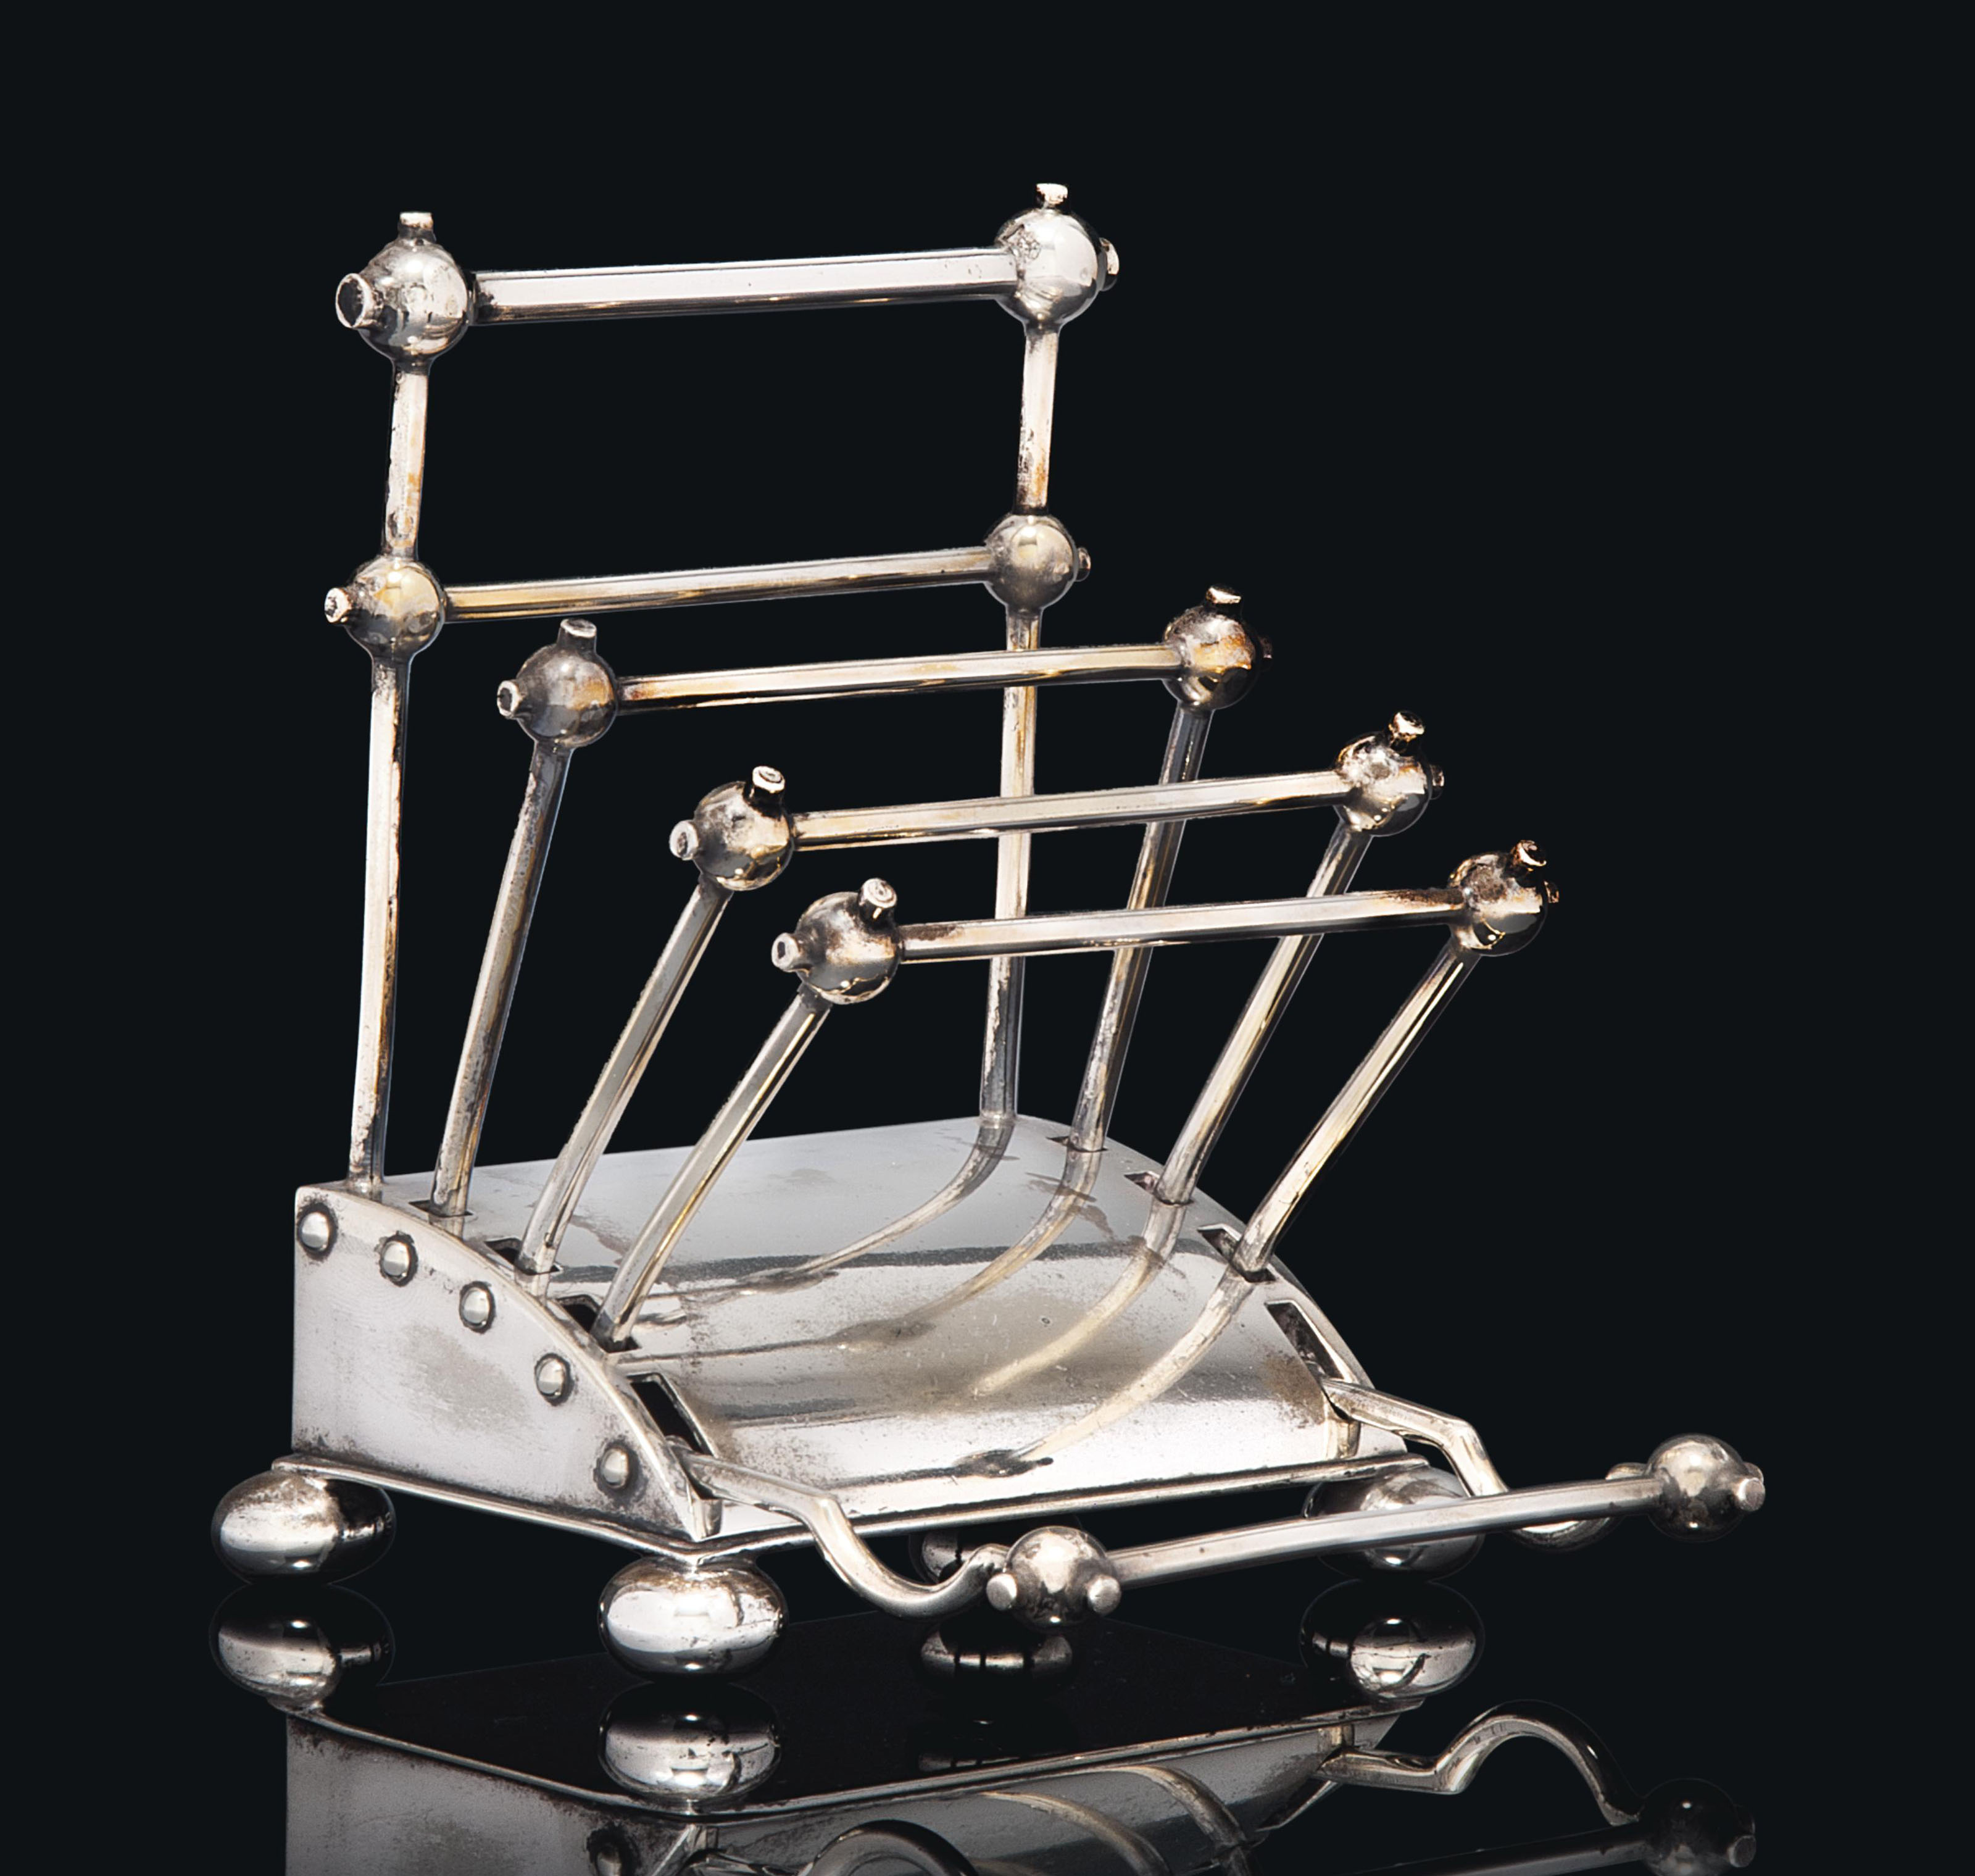 A CHRISTOPHER DRESSER (1834-1904) SILVER-PLATED ARTICULATED HALF-LETTER RACK AND PEN HOLDER MADE BY HUKIN & HEATH